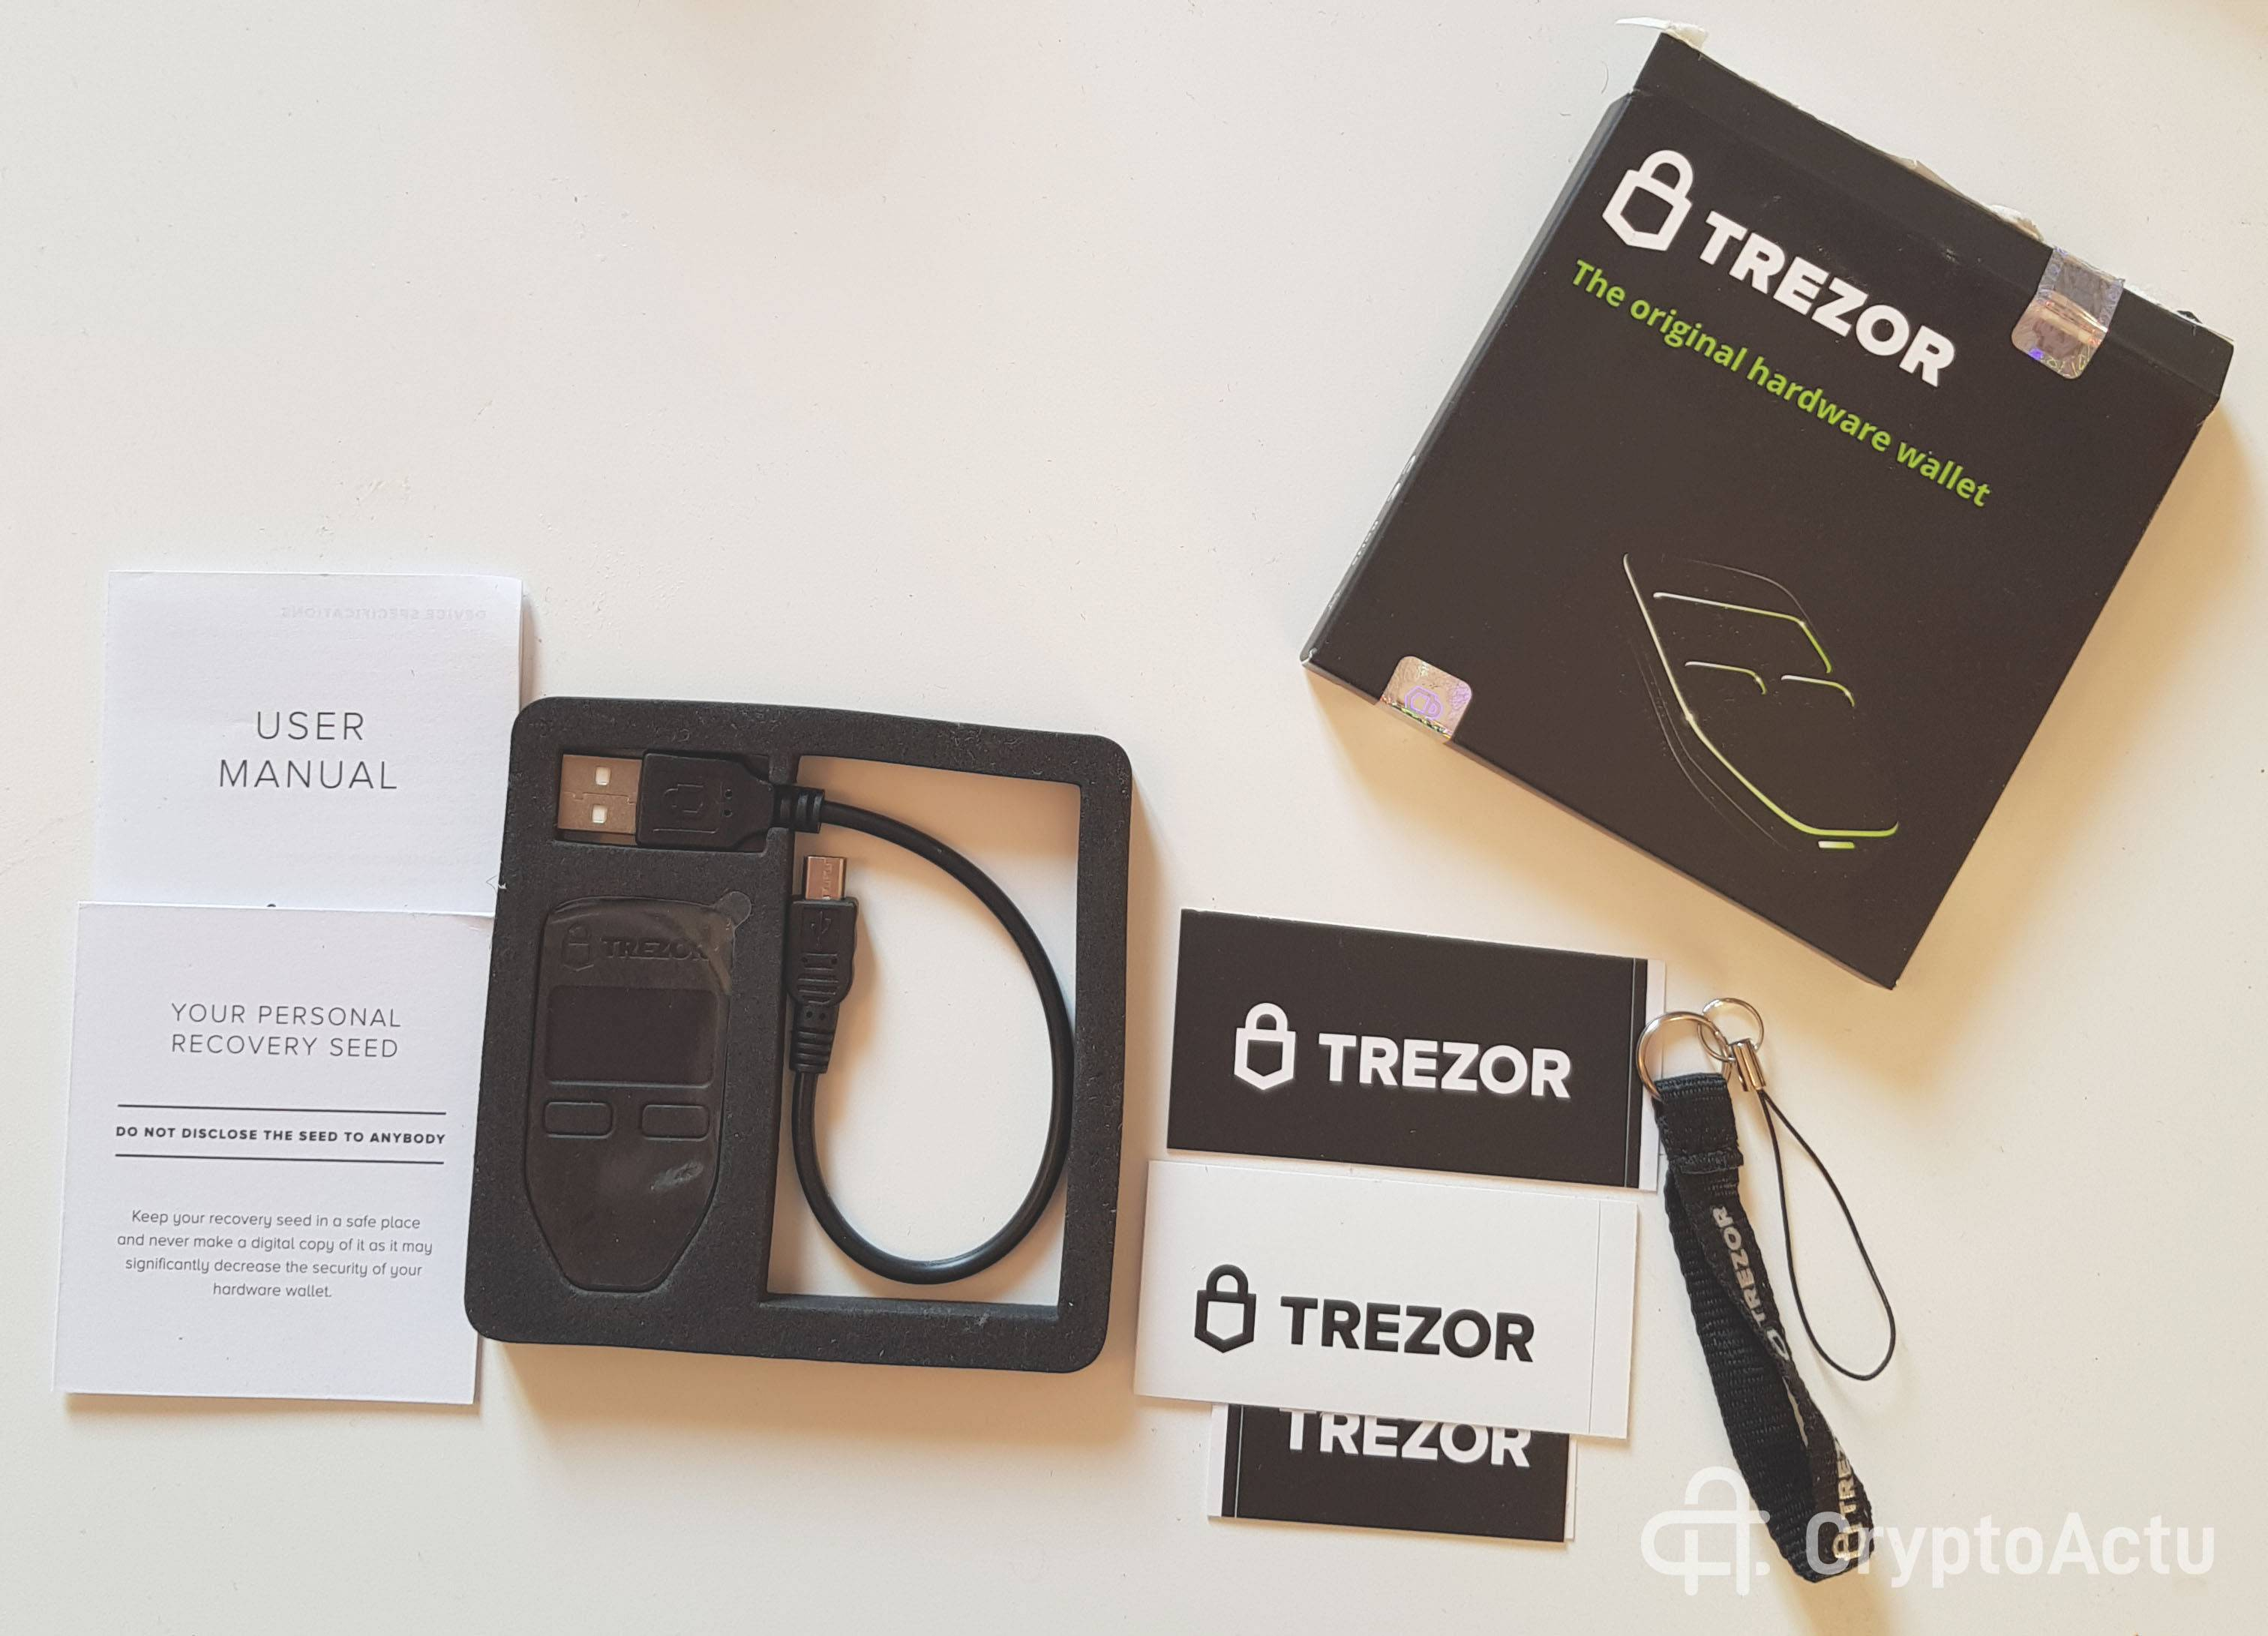 trezor test complet et avis du portefeuille pour crypto monnaies lesscro. Black Bedroom Furniture Sets. Home Design Ideas